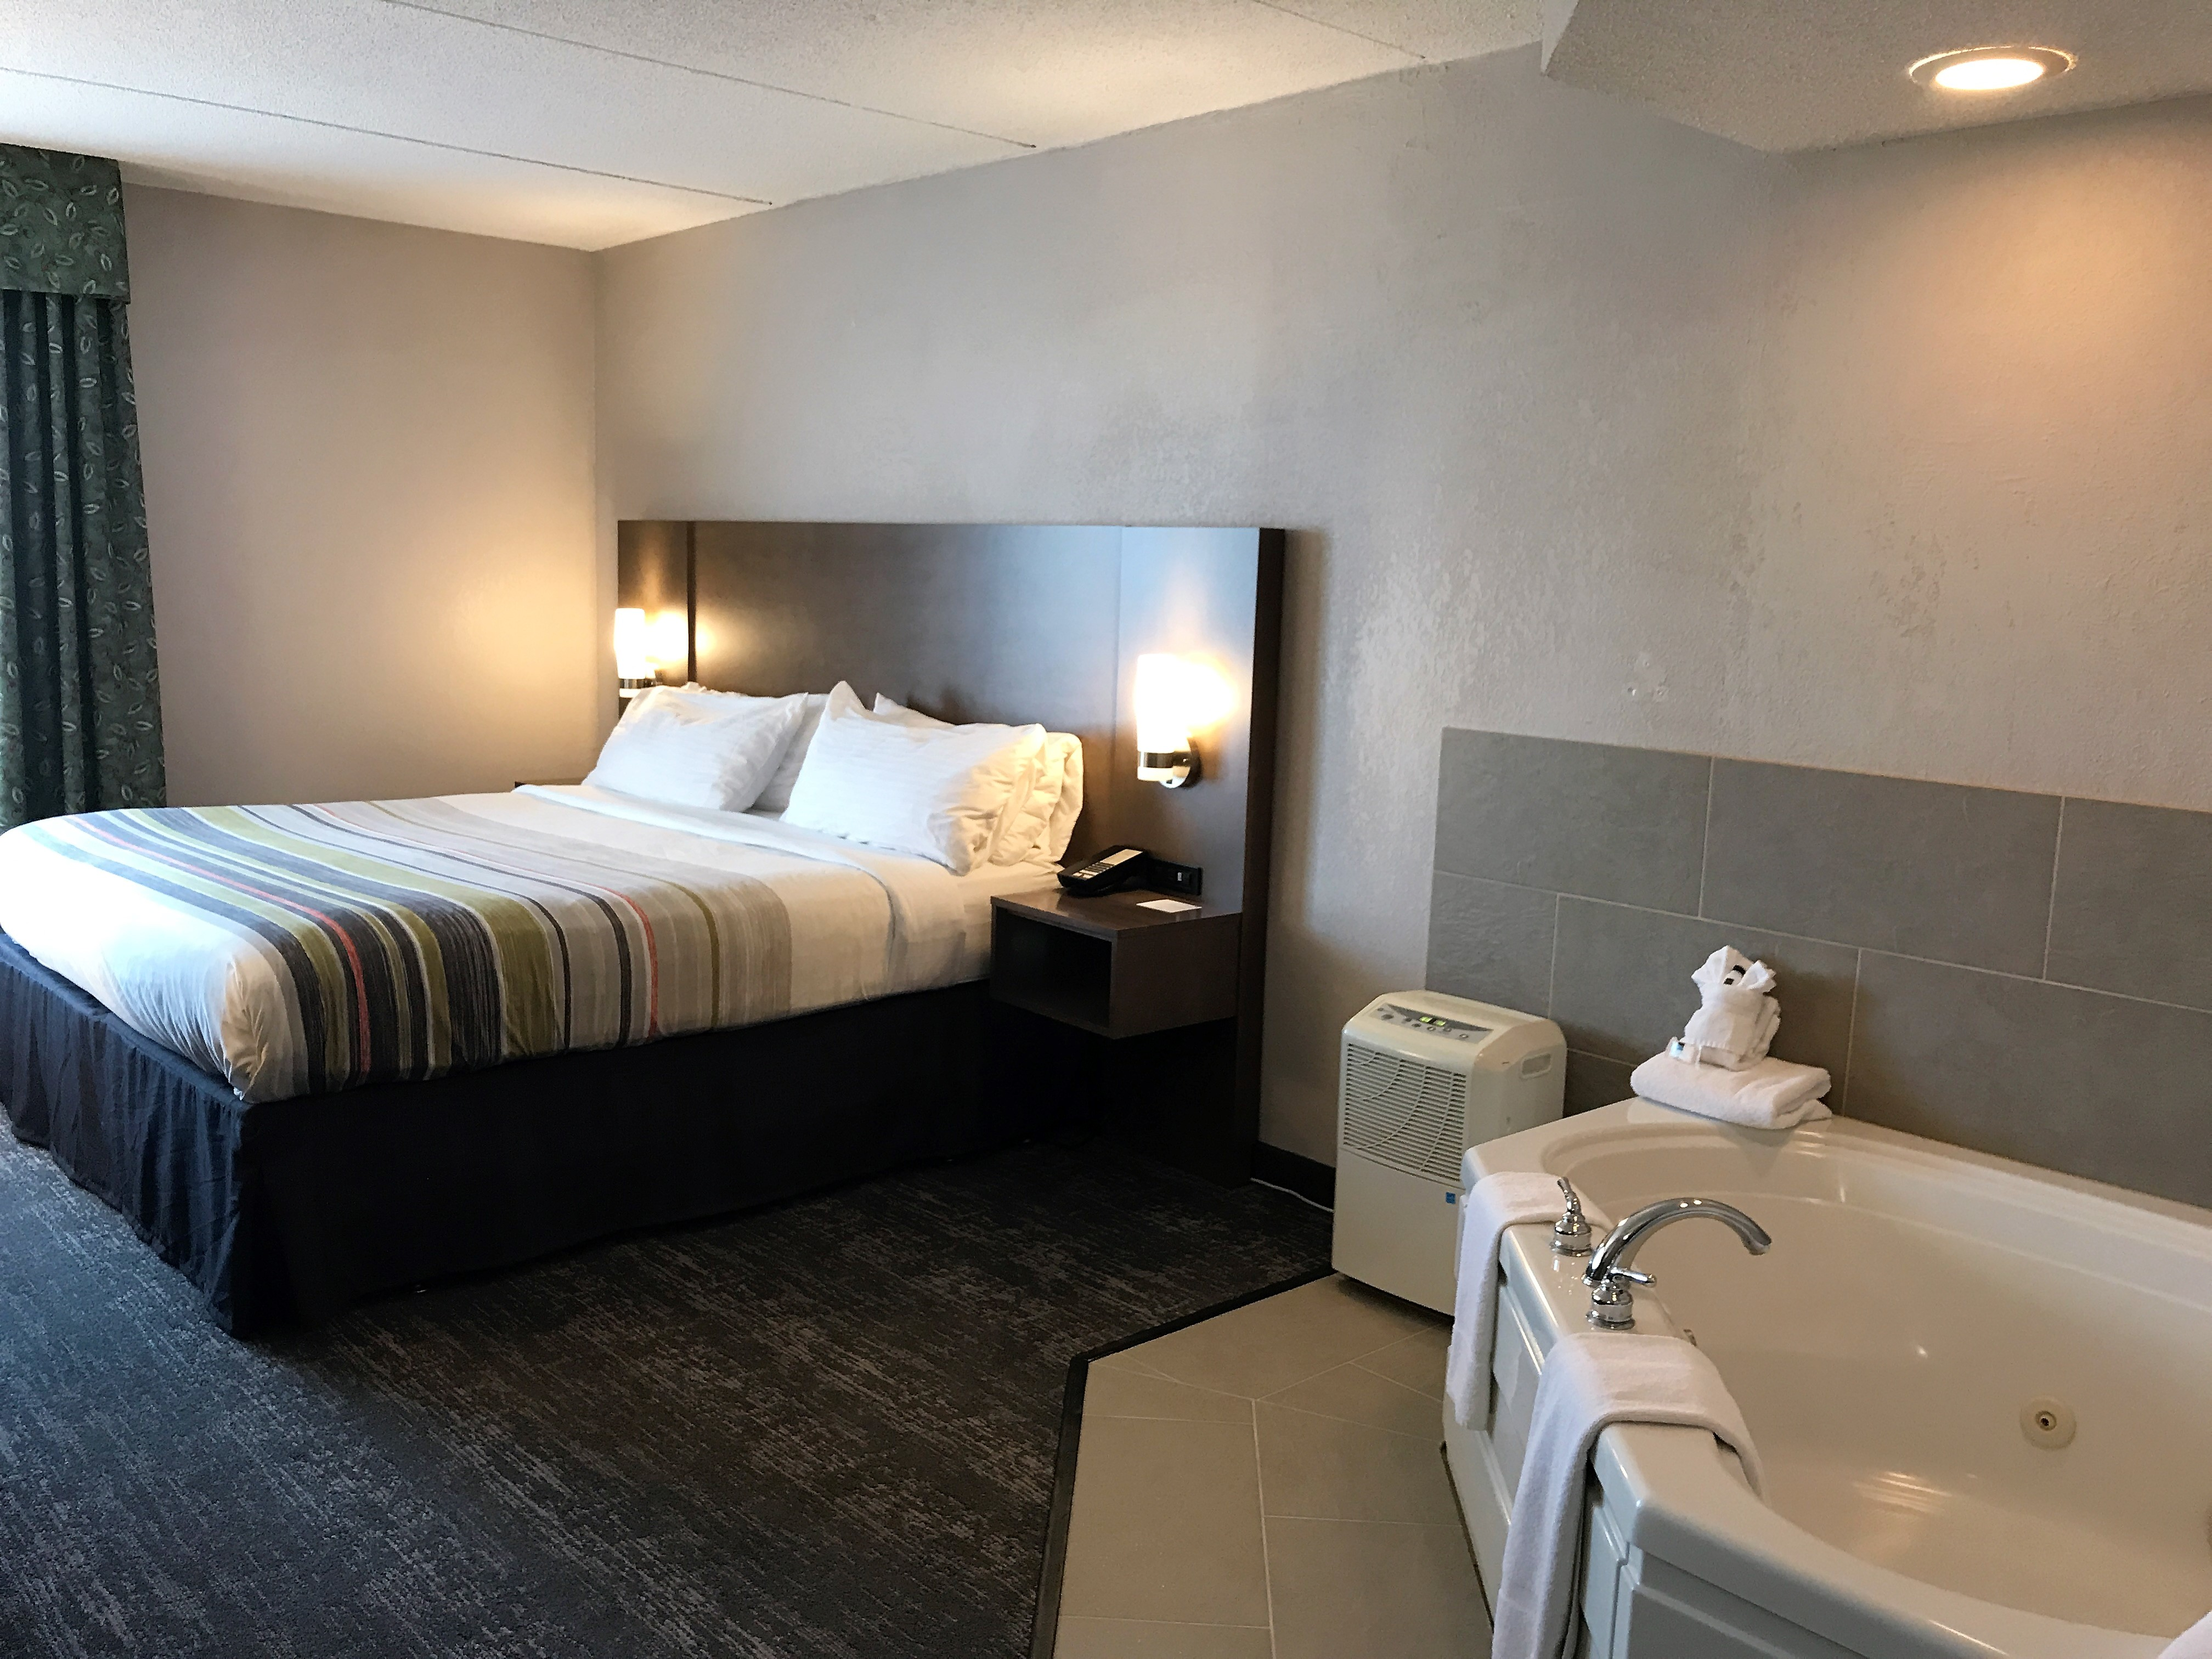 Country Inn & Suites by Radisson, Mt. Pleasant-Racine West, WI image 2